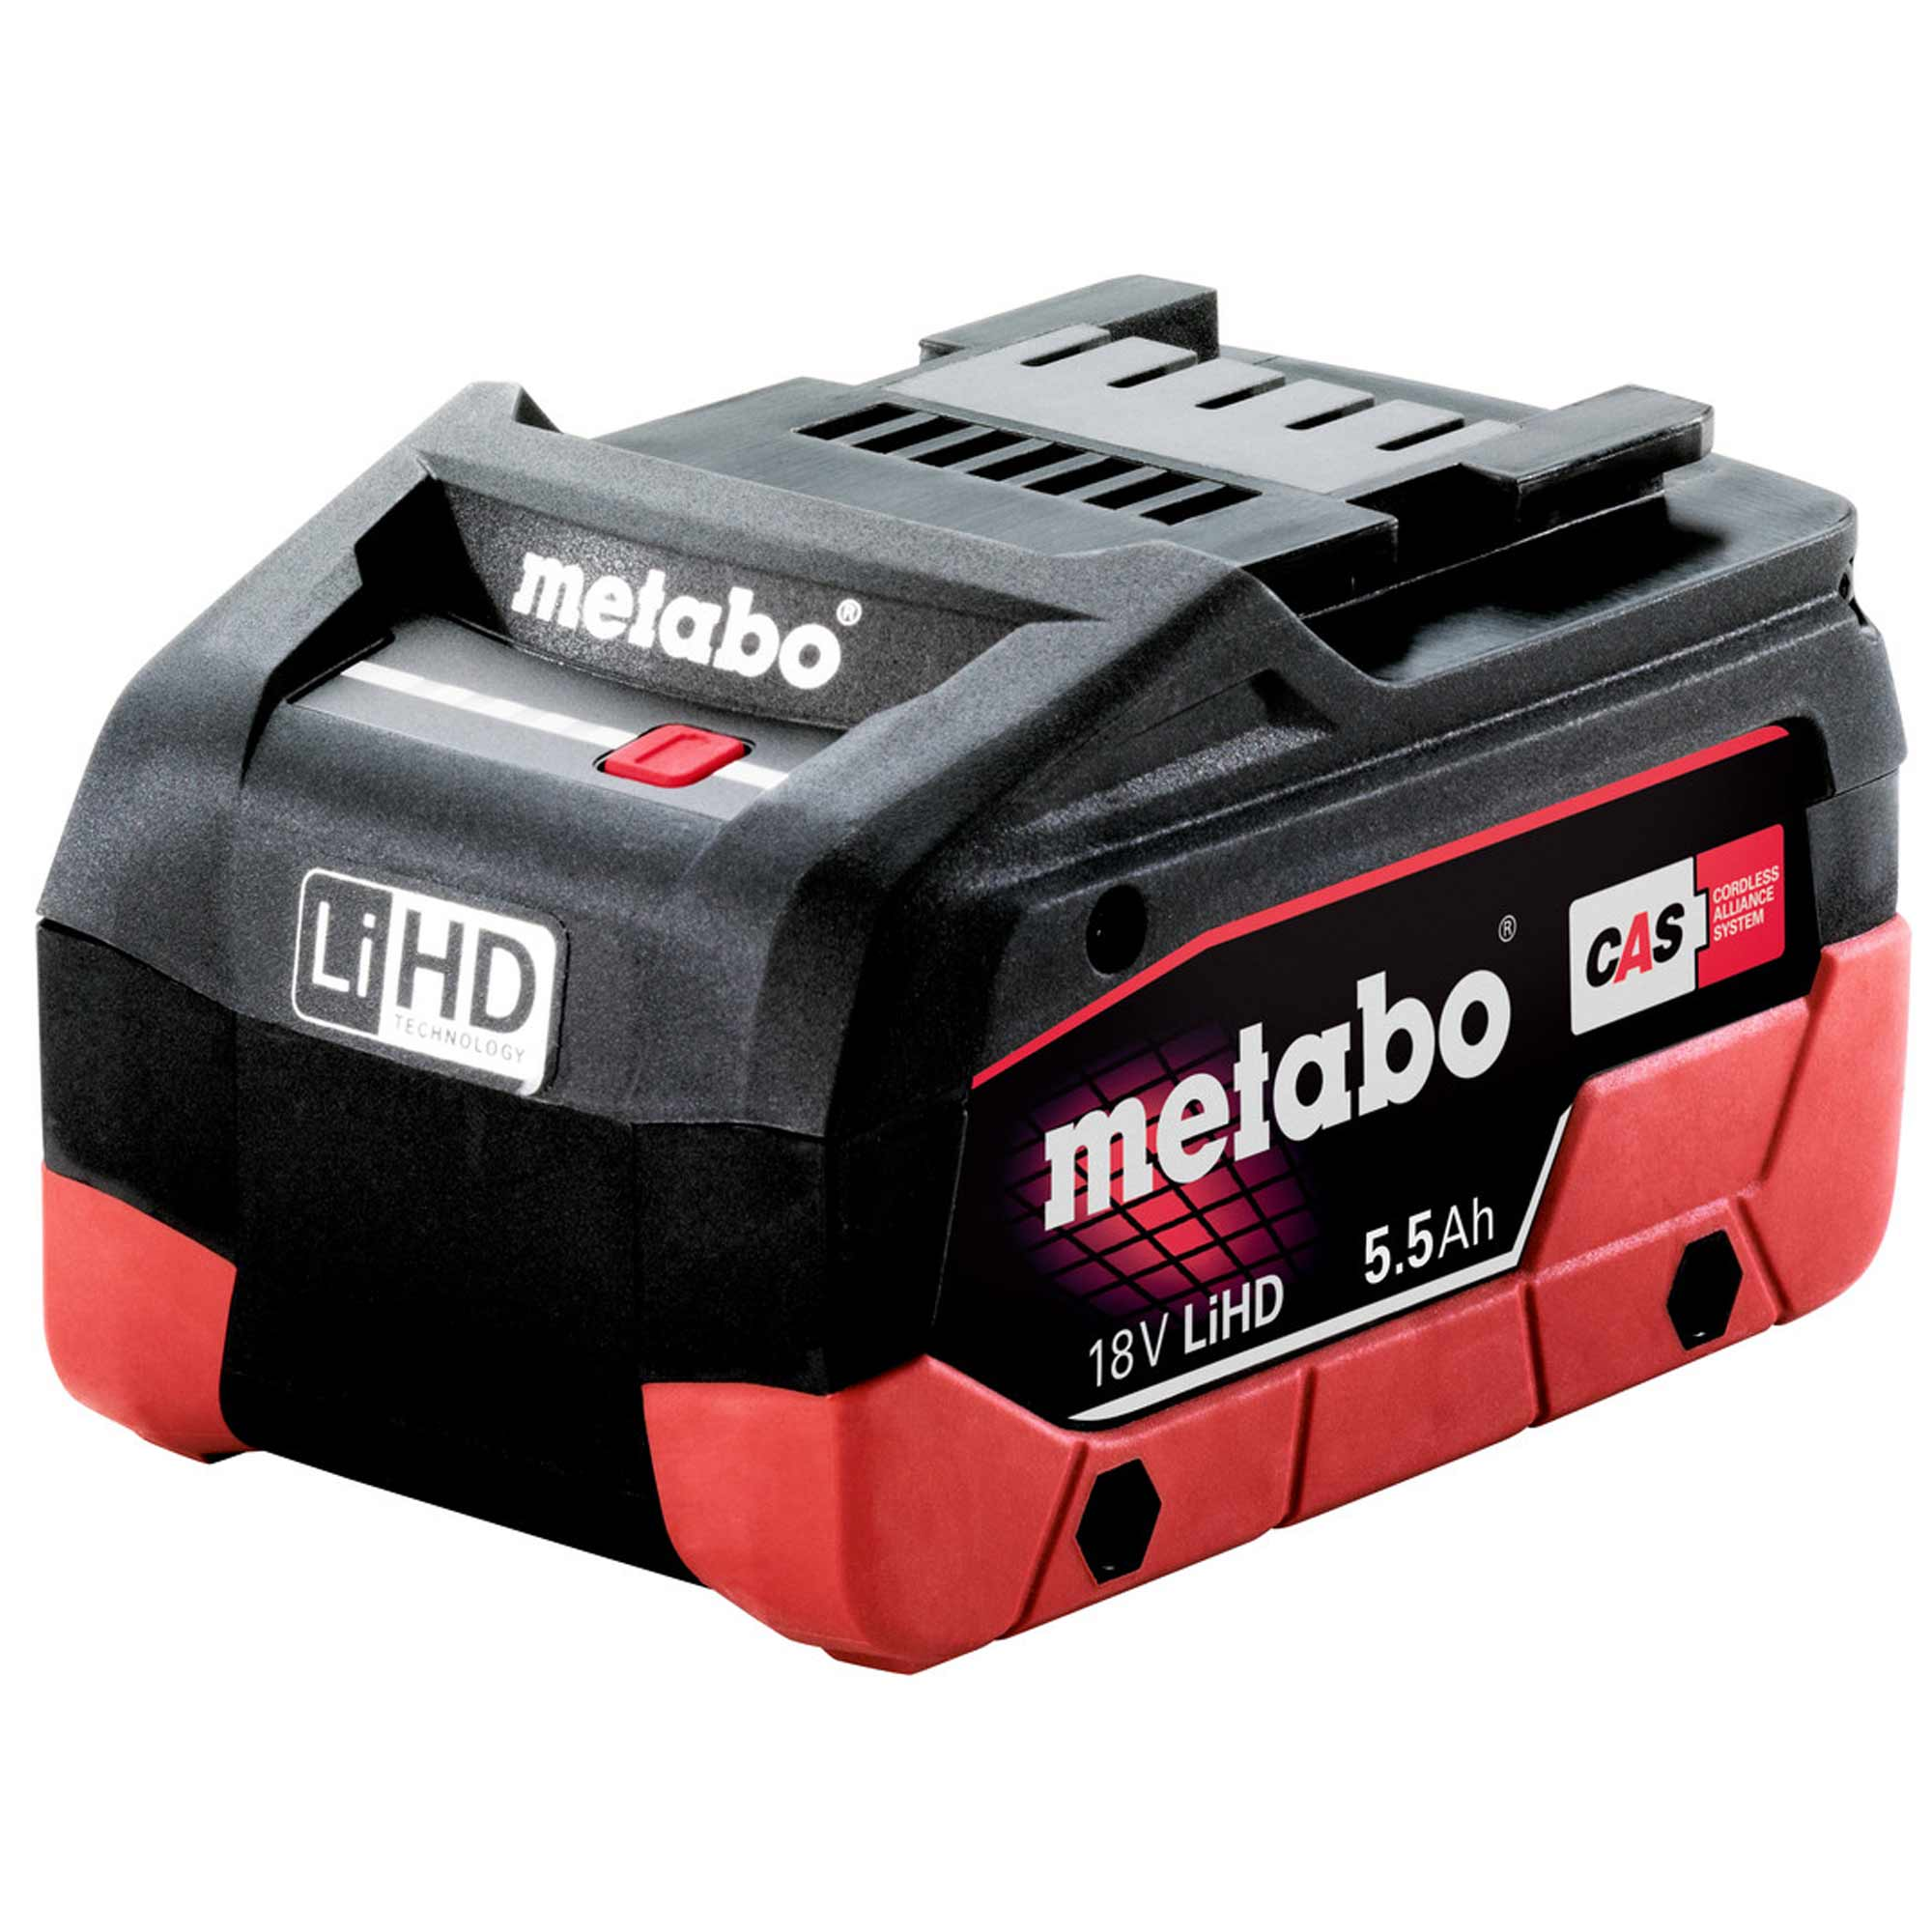 metabo 625342000 metabo 18v lihd 5 5ah battery. Black Bedroom Furniture Sets. Home Design Ideas